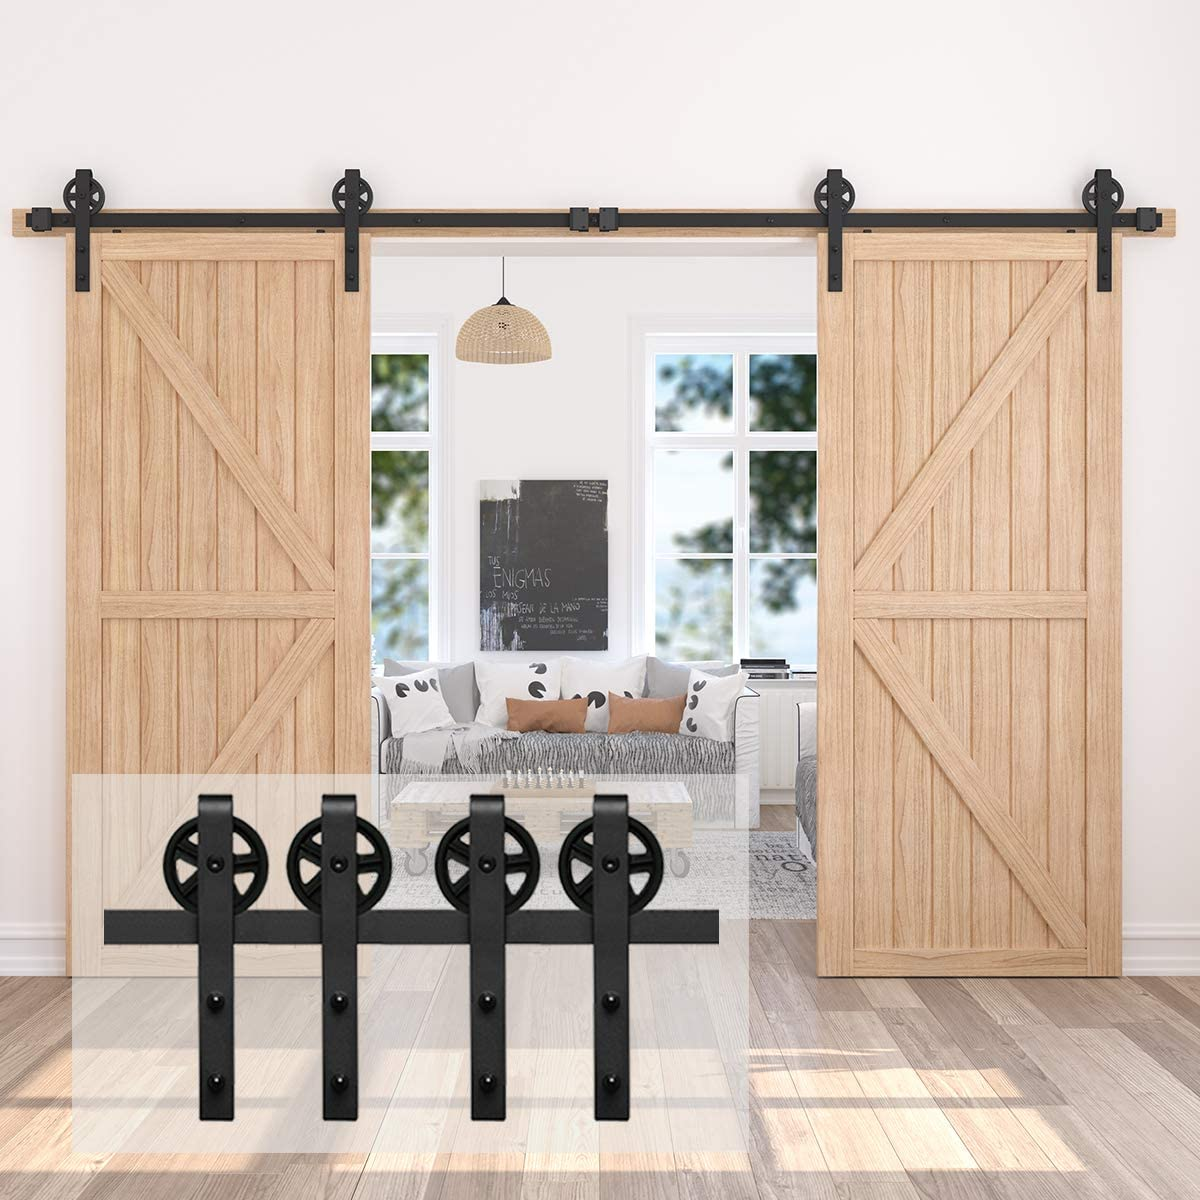 Simple and Easy to Install Black J Shape Hangers Homlux 6ft Heavy Duty Sturdy Sliding Barn Door Hardware Kit One Door Fit 1 3//8-1 3//4 Thickness Door Panel Smoothly and Quietly